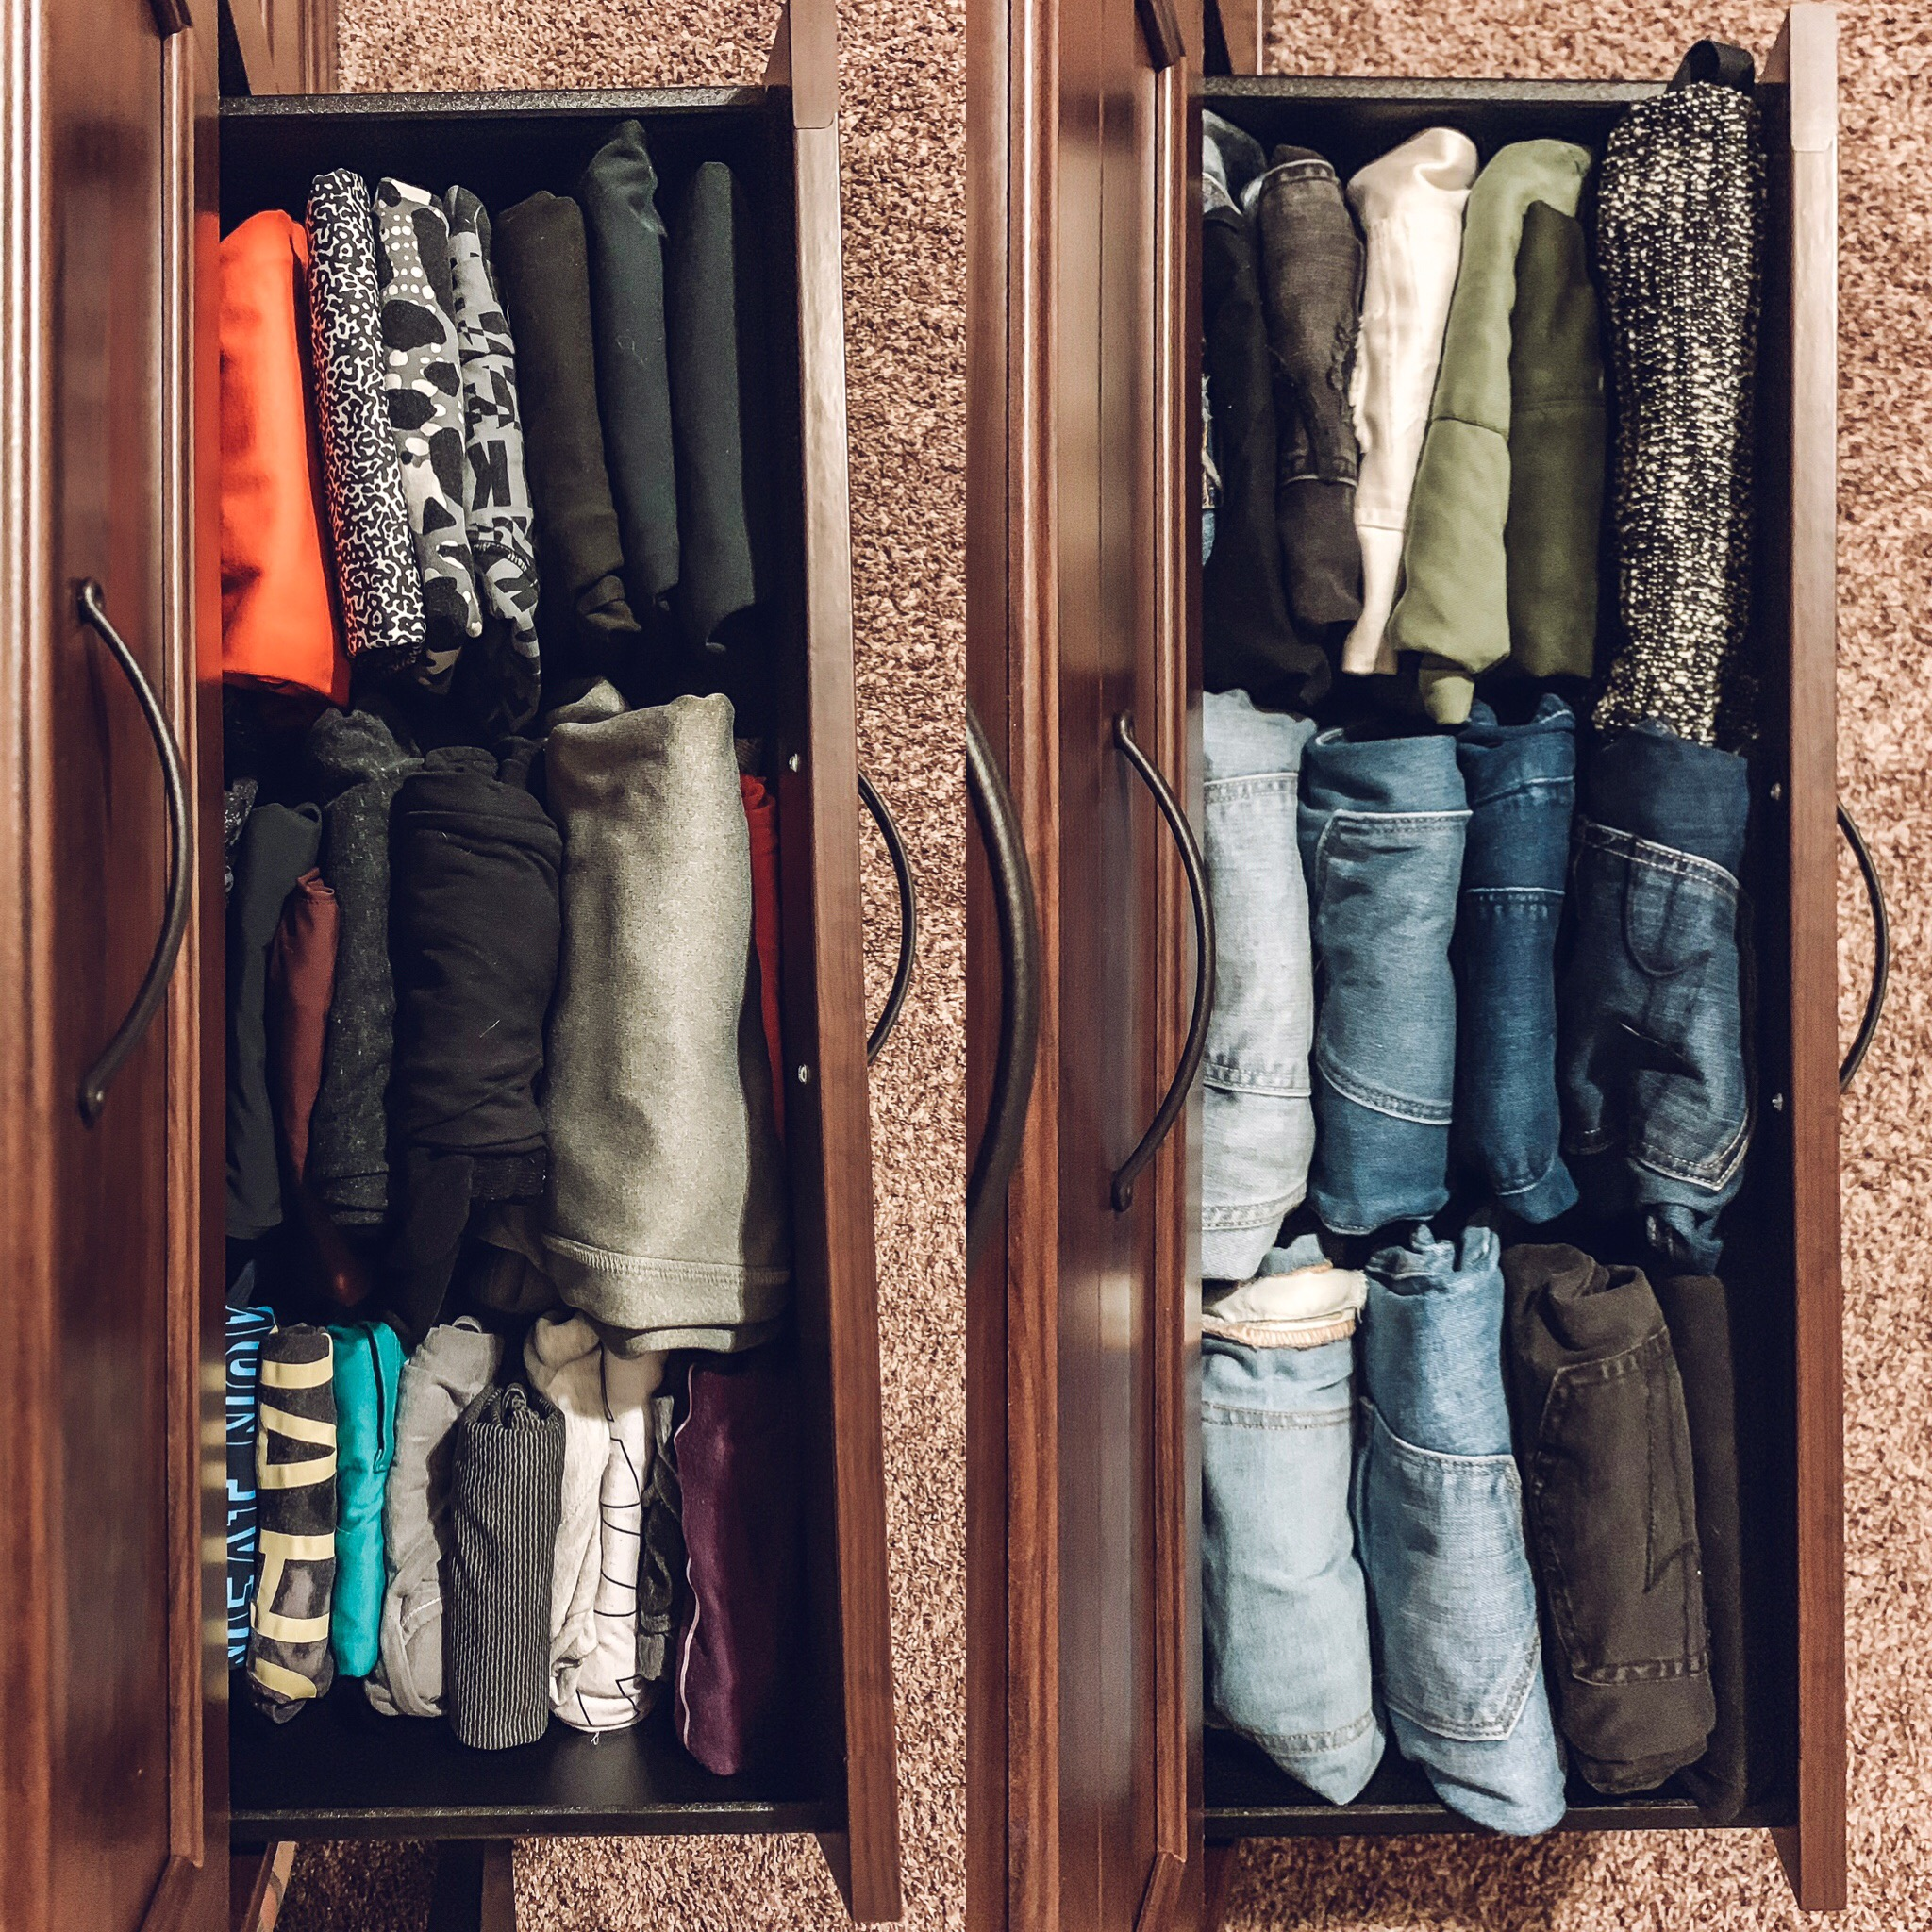 Organizing a cluttered space